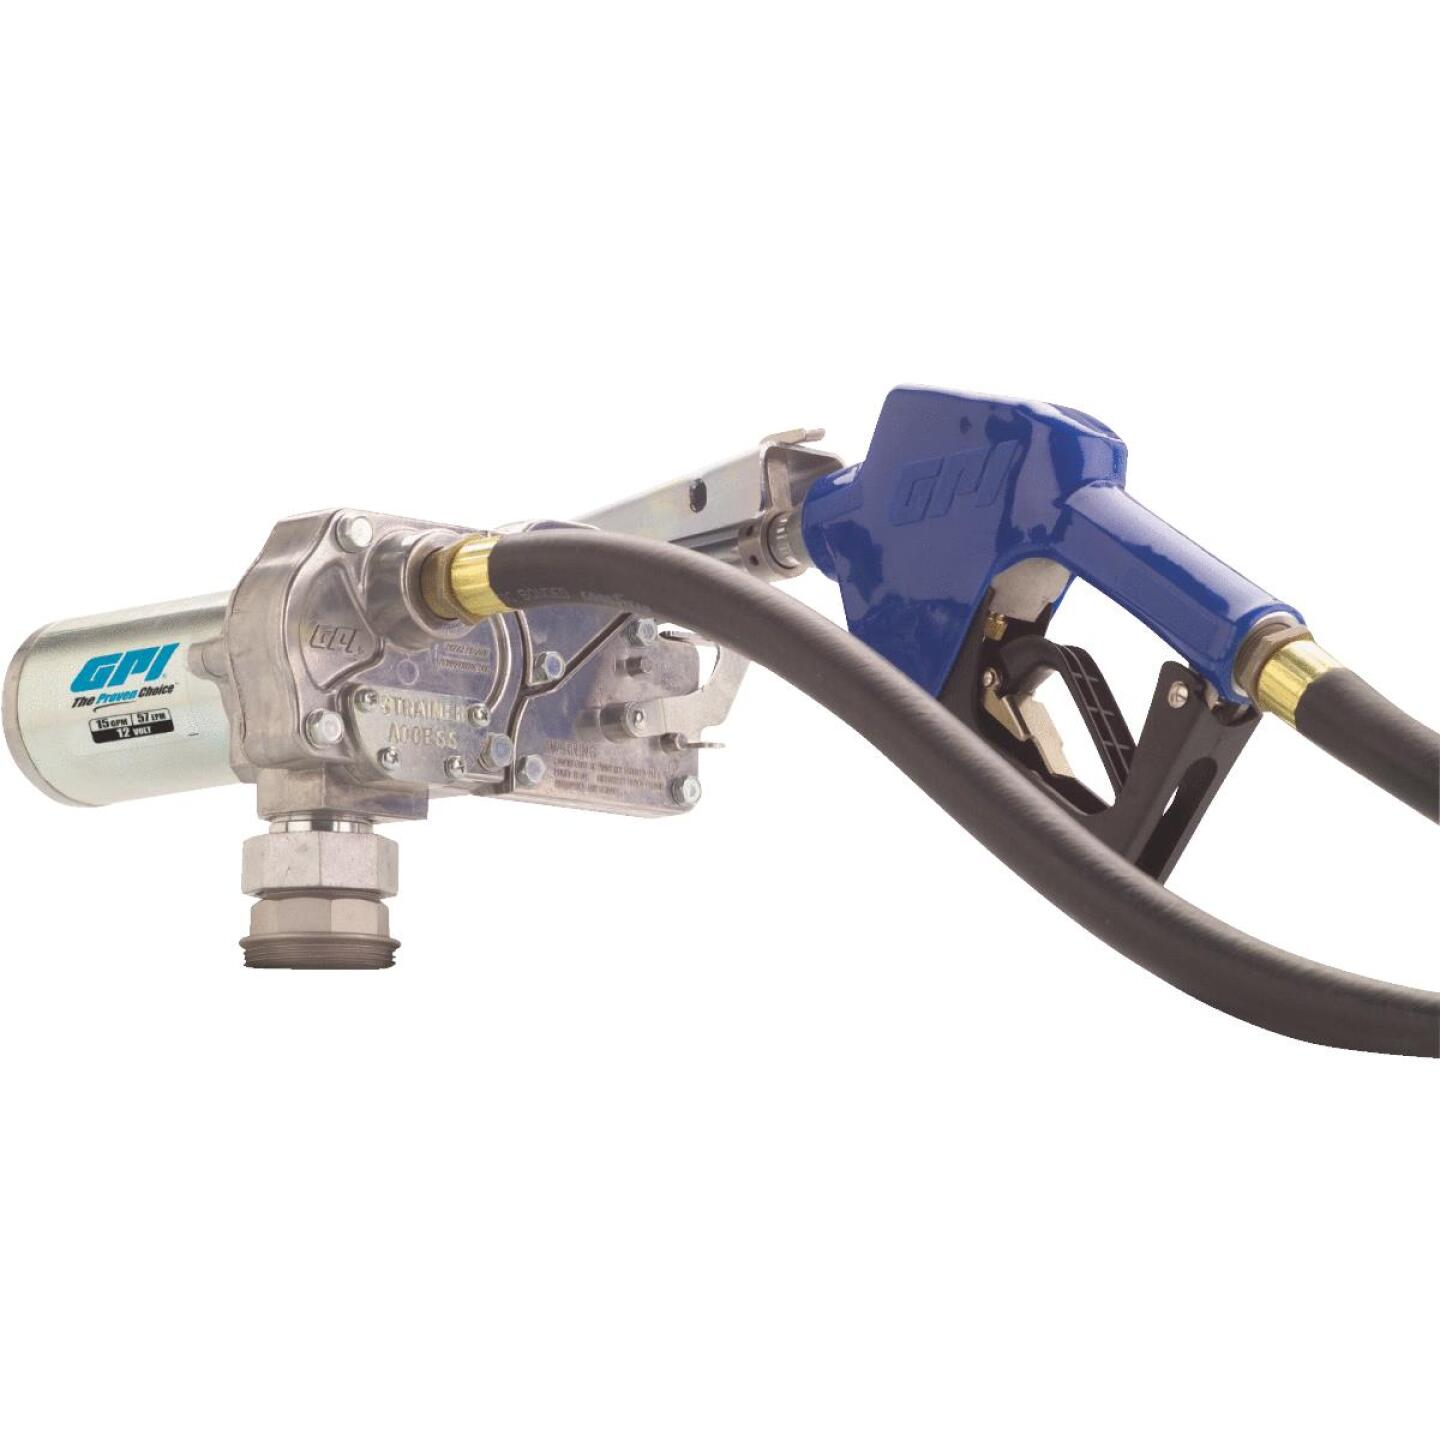 GPI 12V DC, 15 GPM Automatic Fuel Transfer Pump Image 1